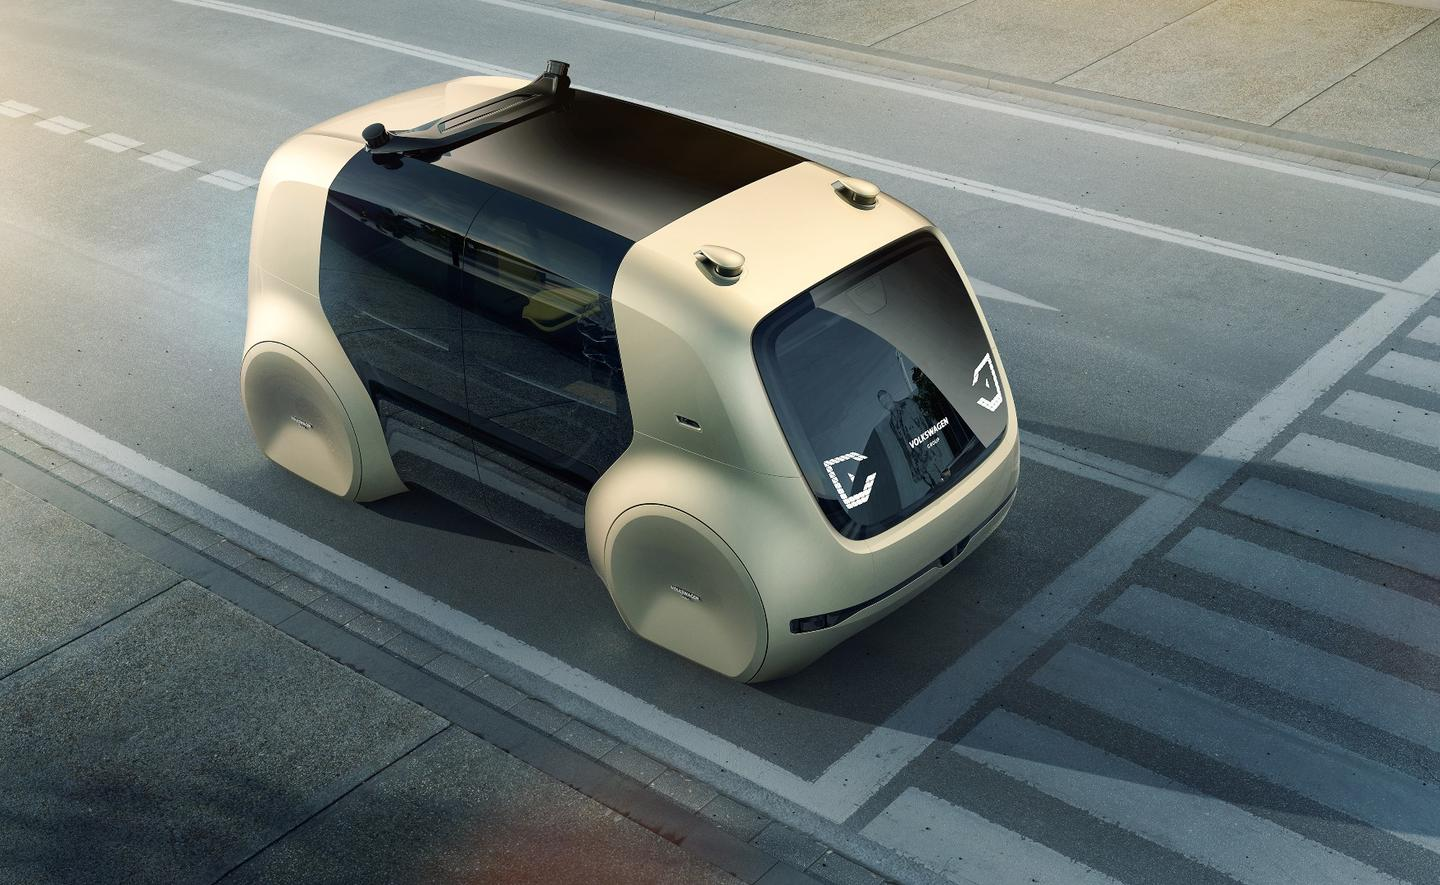 Sedric is a clumsy conjunction of SelfDriving Car